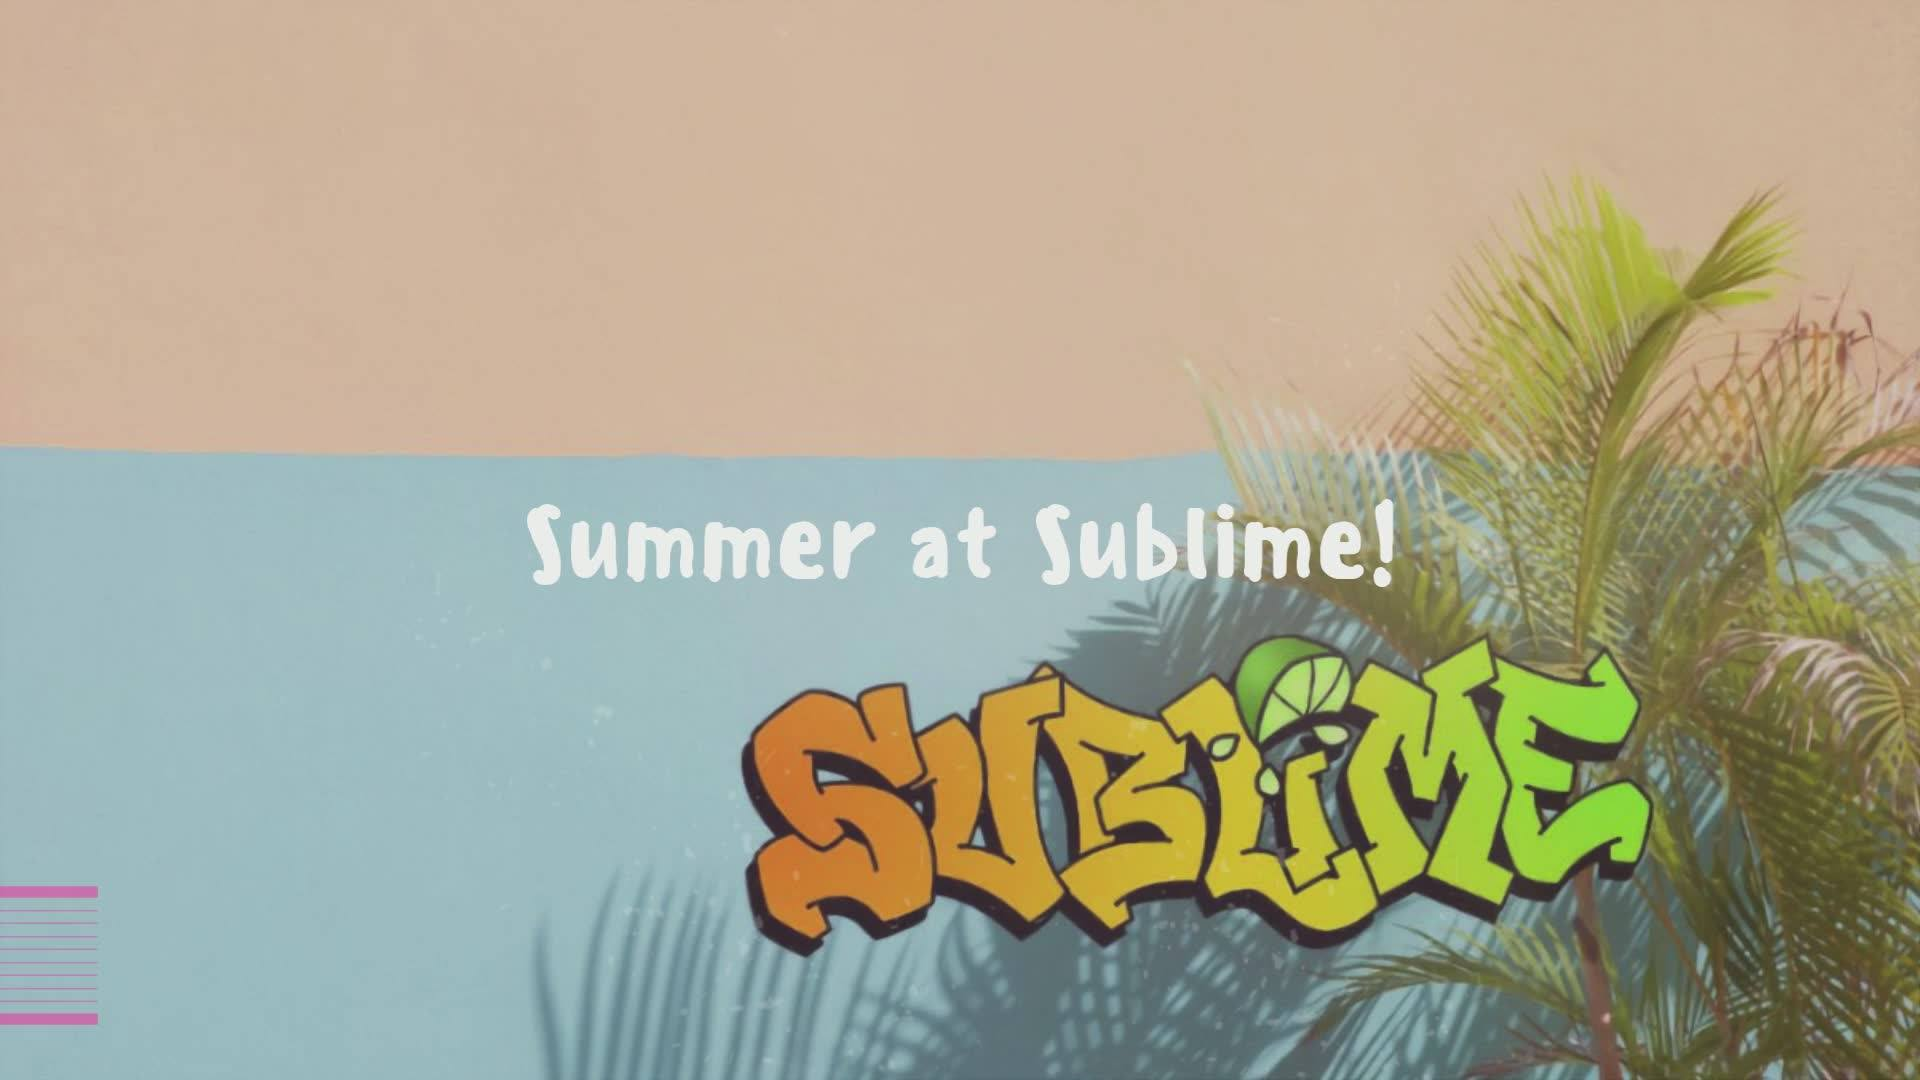 We can't wait to see you!  🌴🌞 #summeratsublime